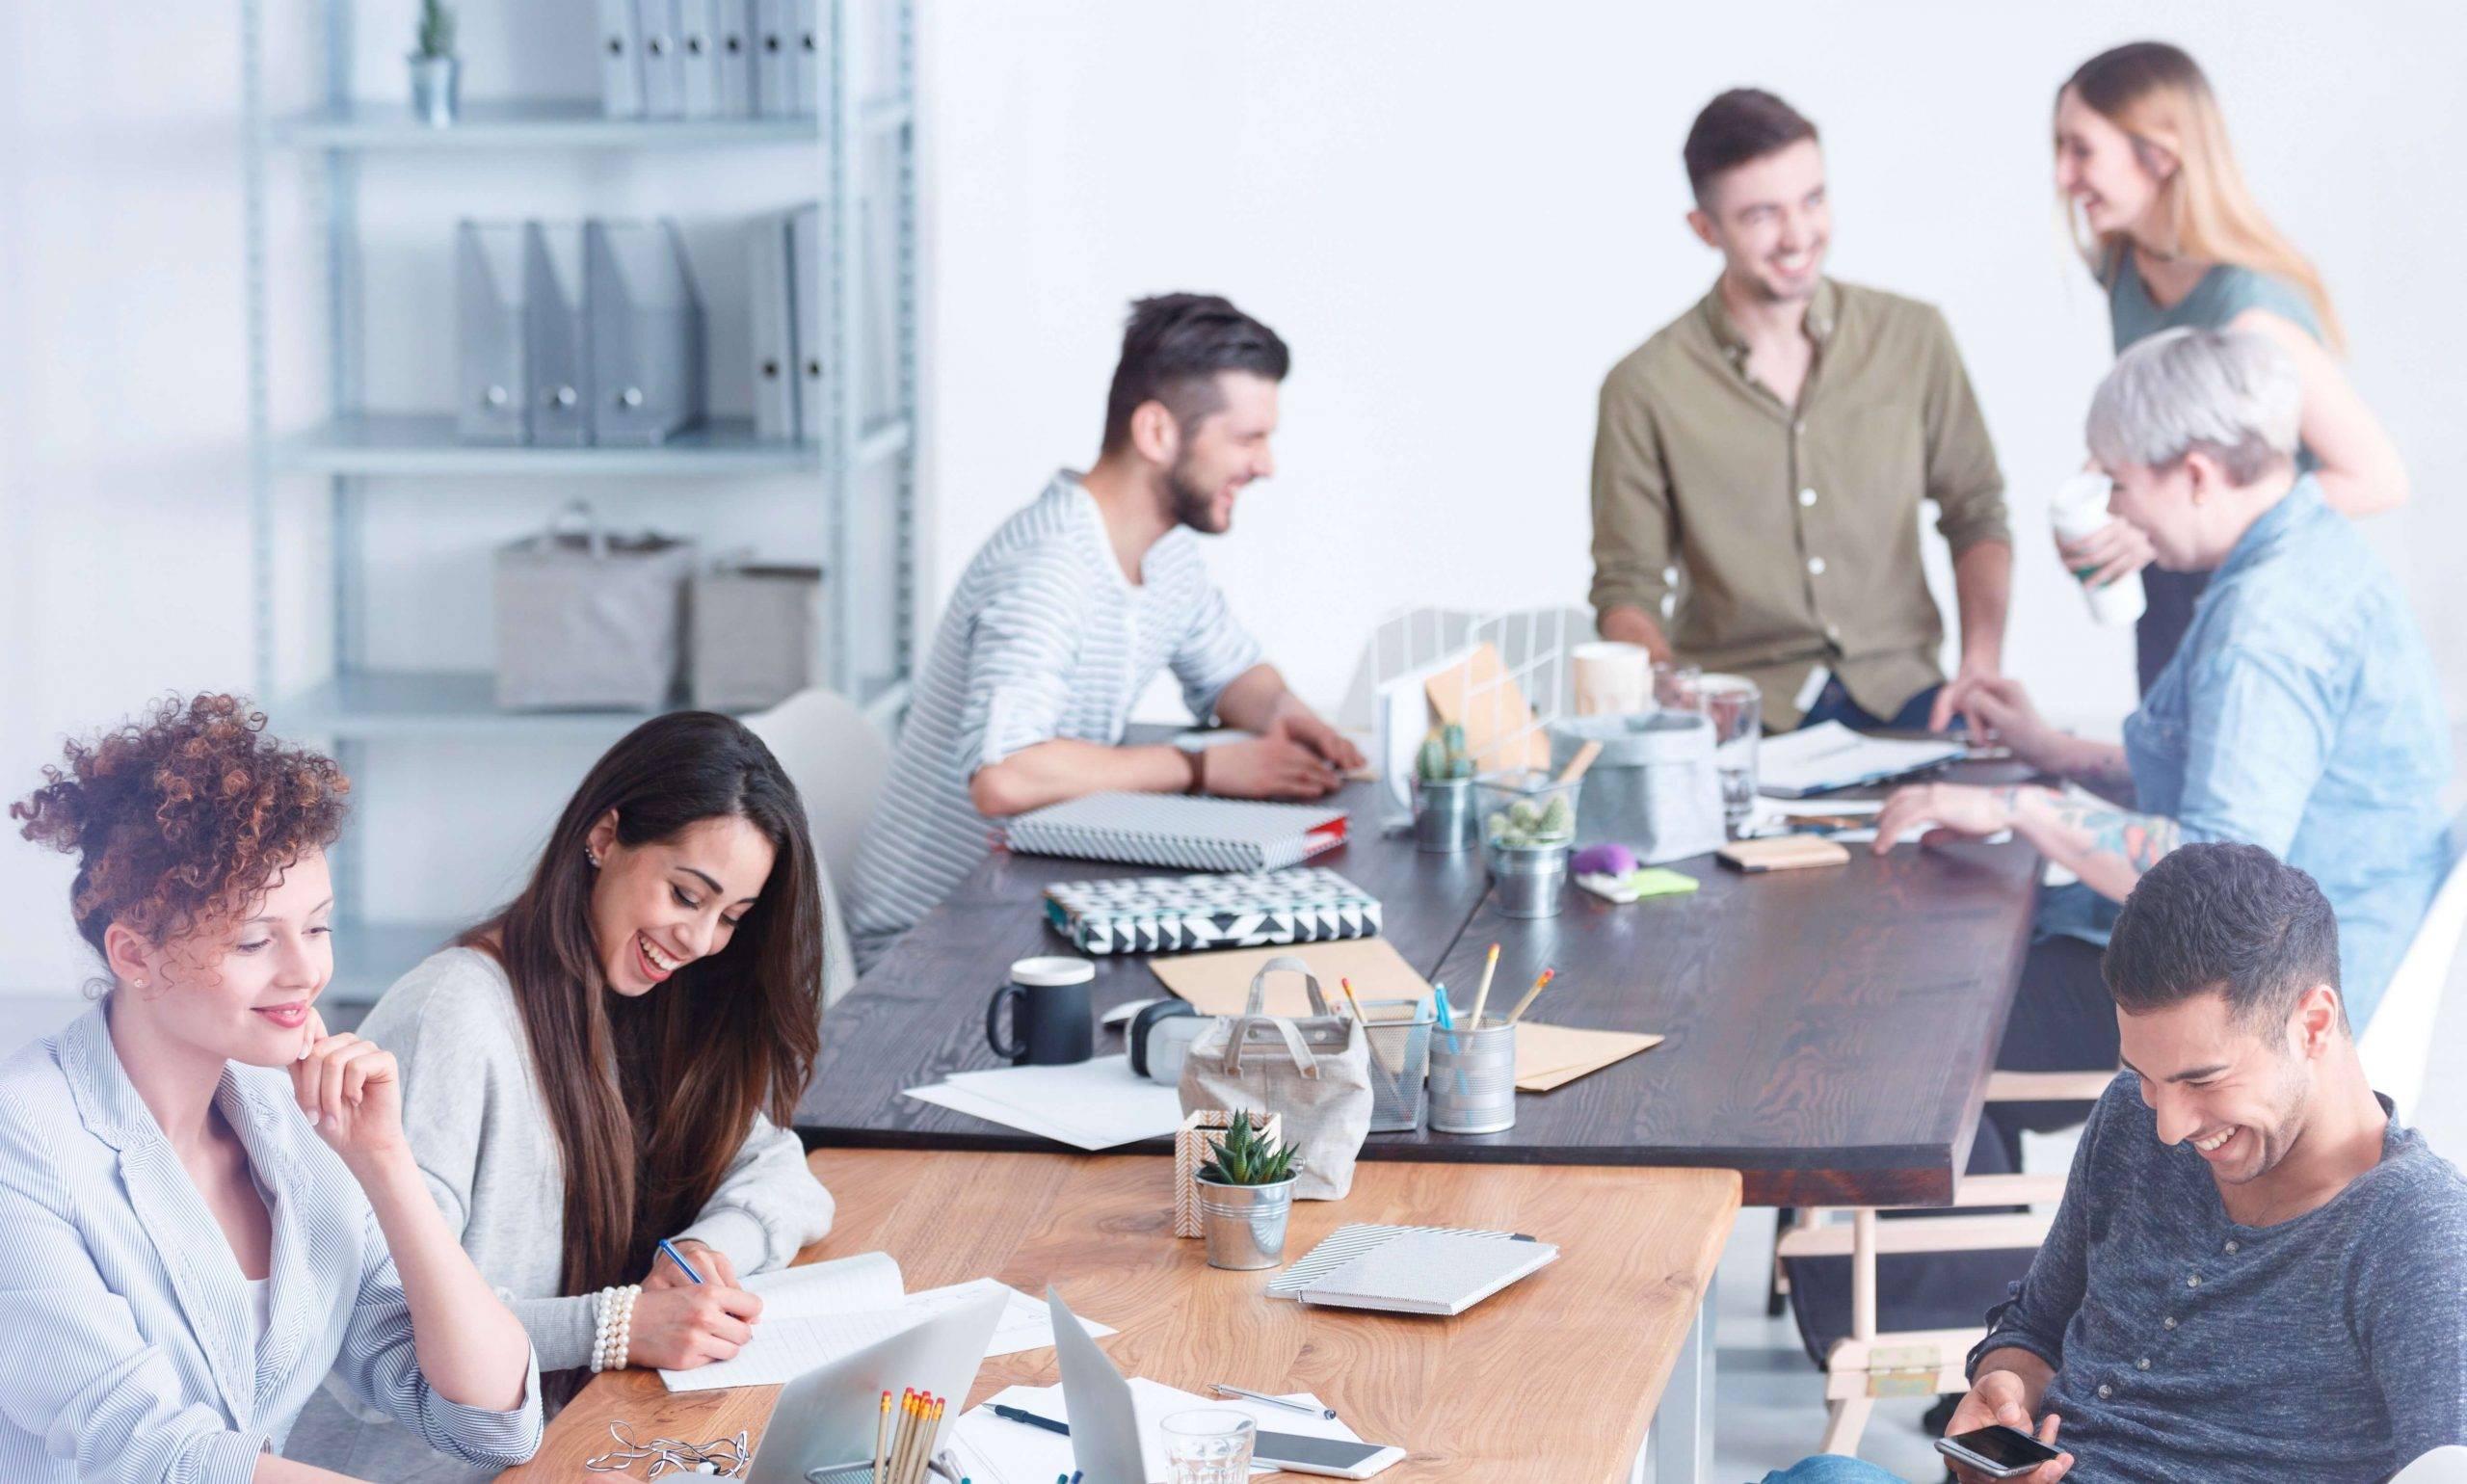 4 fun activities to improve your company culture.